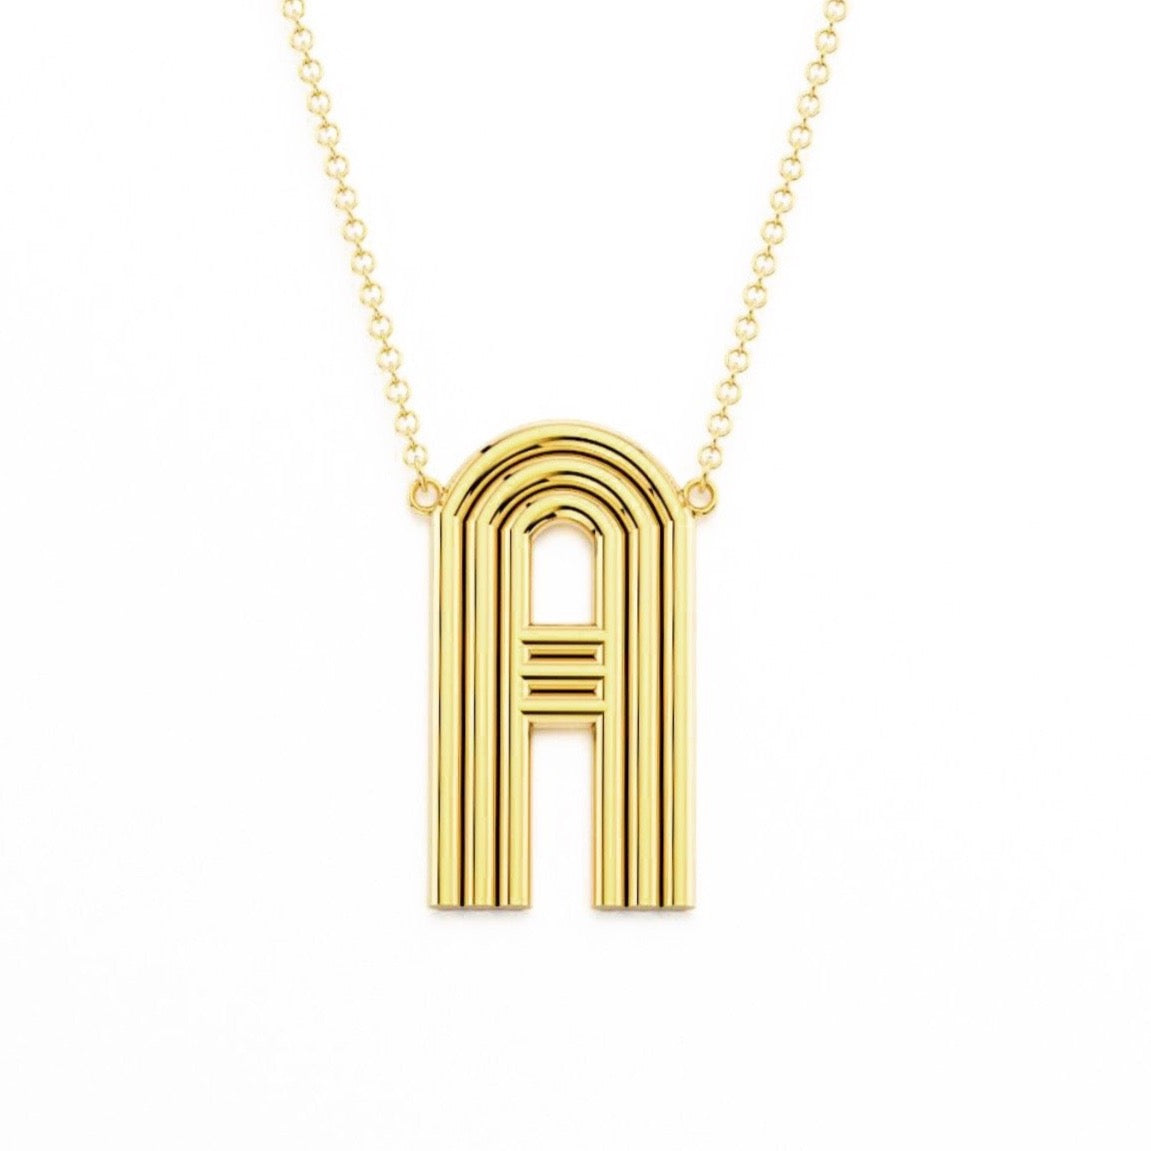 Jumbo Radiant Initial Pendant Necklace